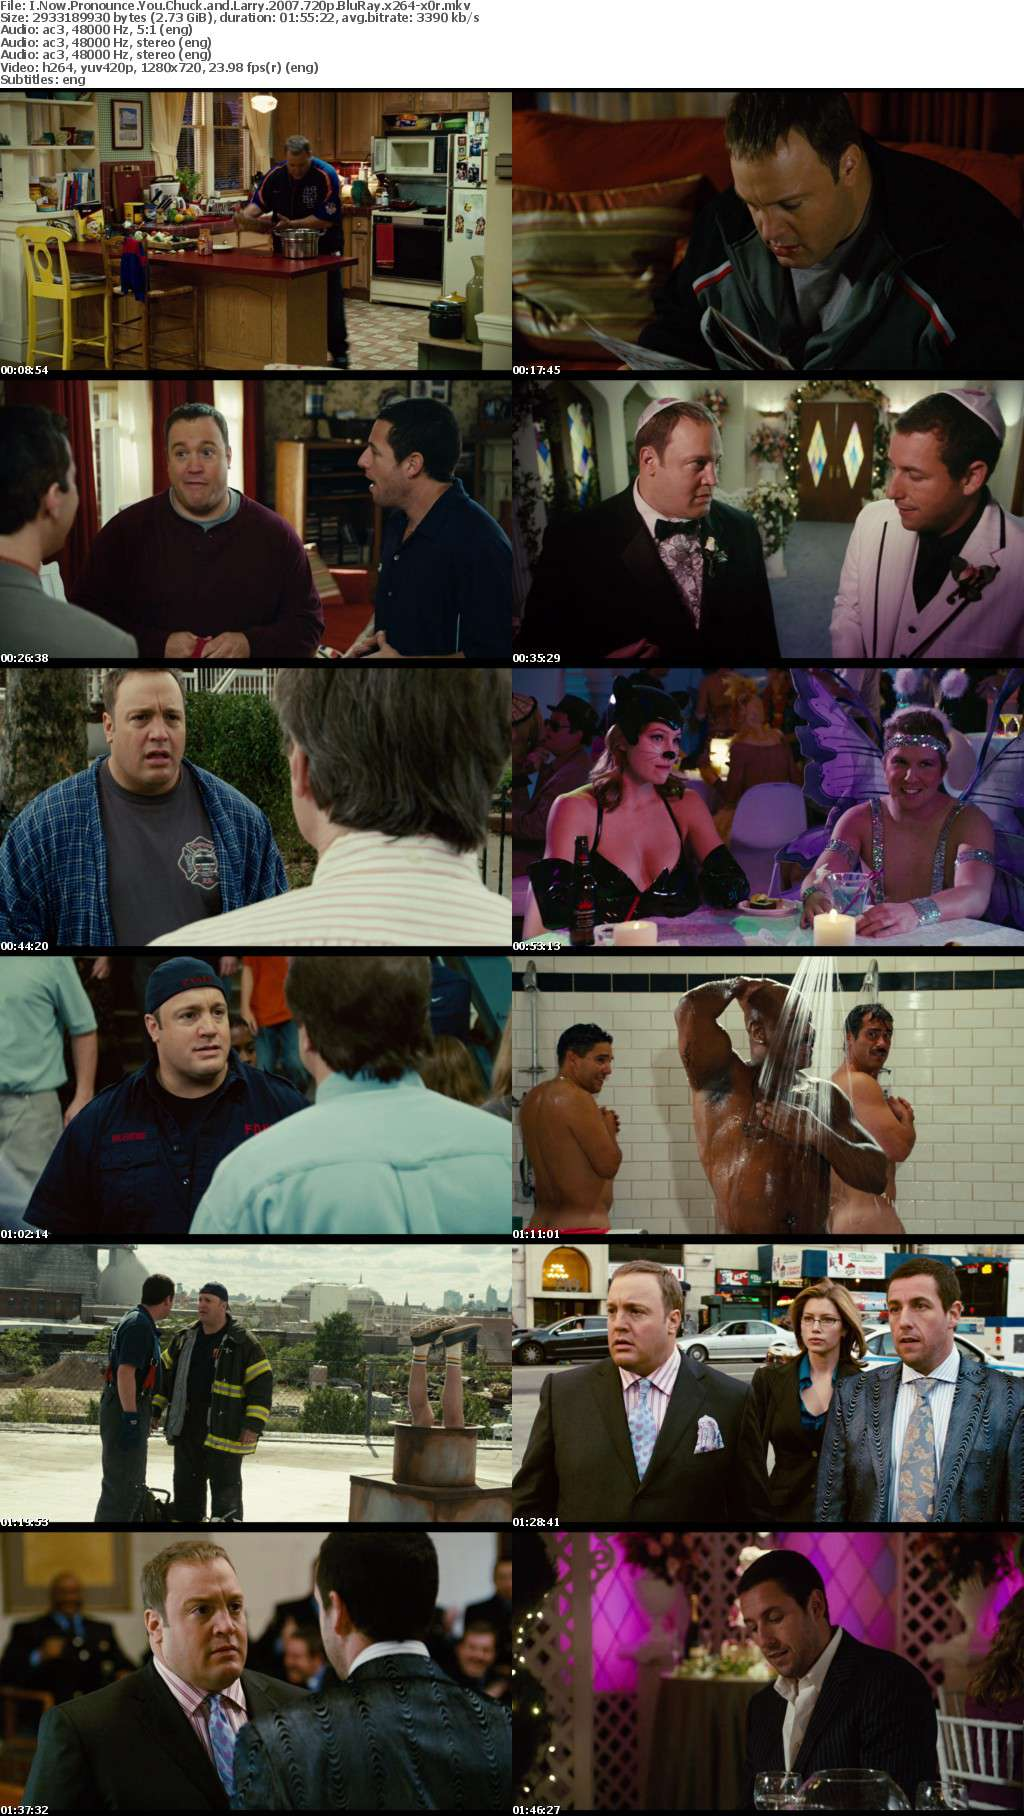 I Now Pronounce You Chuck and Larry 2007 720p BluRay x264 x0r